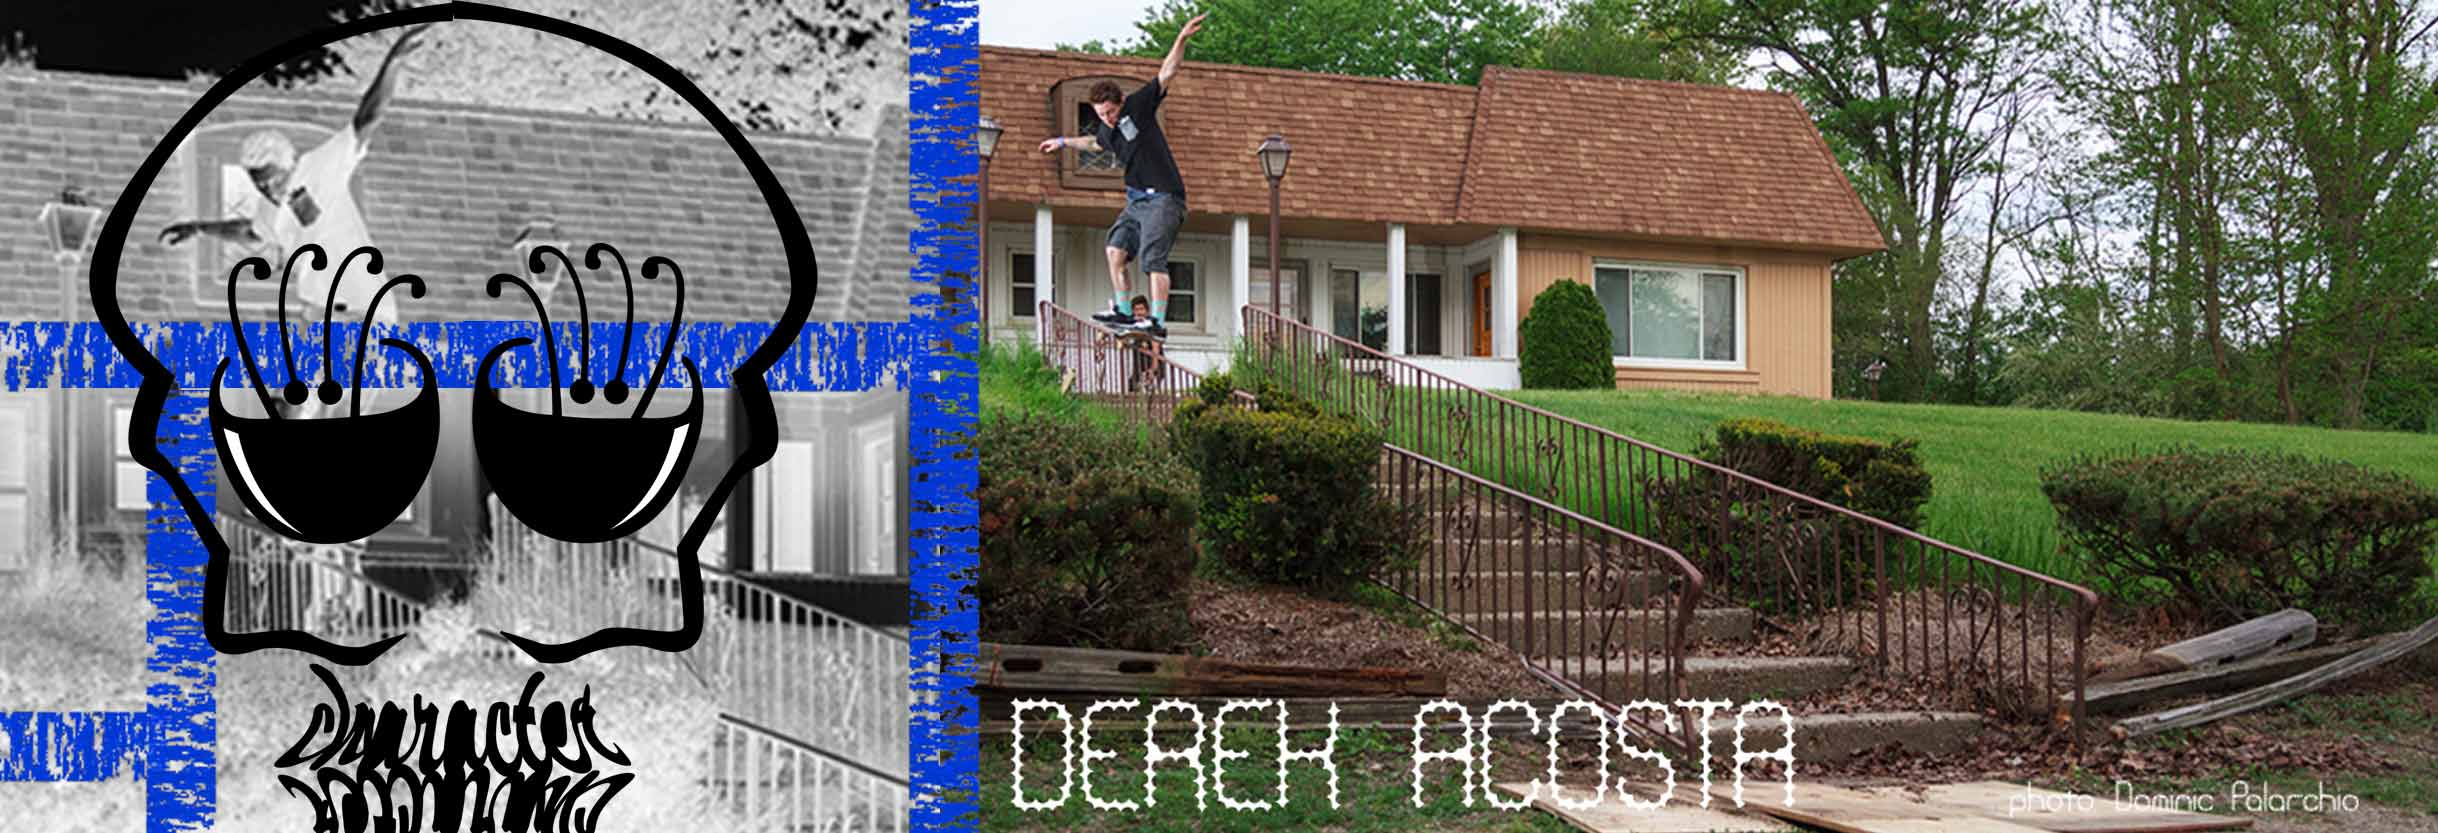 Derek Acosta - Chicago Skateboarding by Character Skateboards